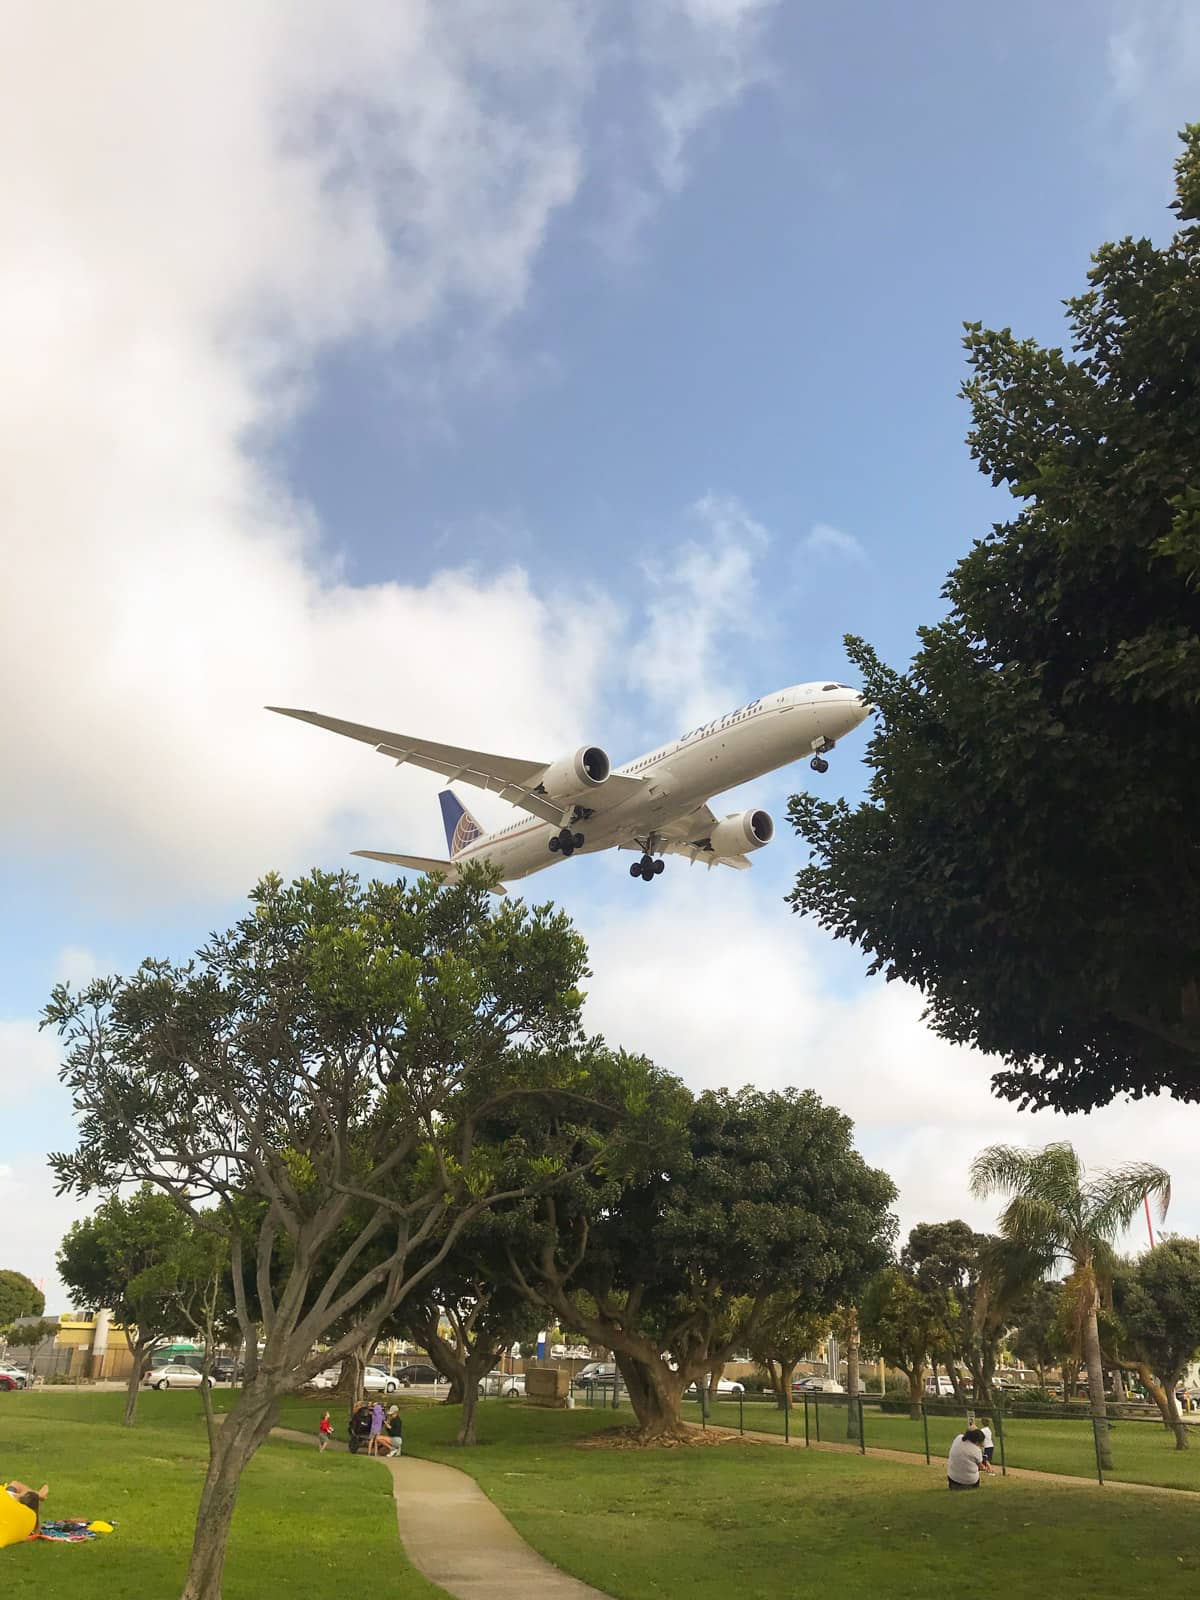 A view from a small park with a few trees and paths, with an airplane flying over, quite close to the ground